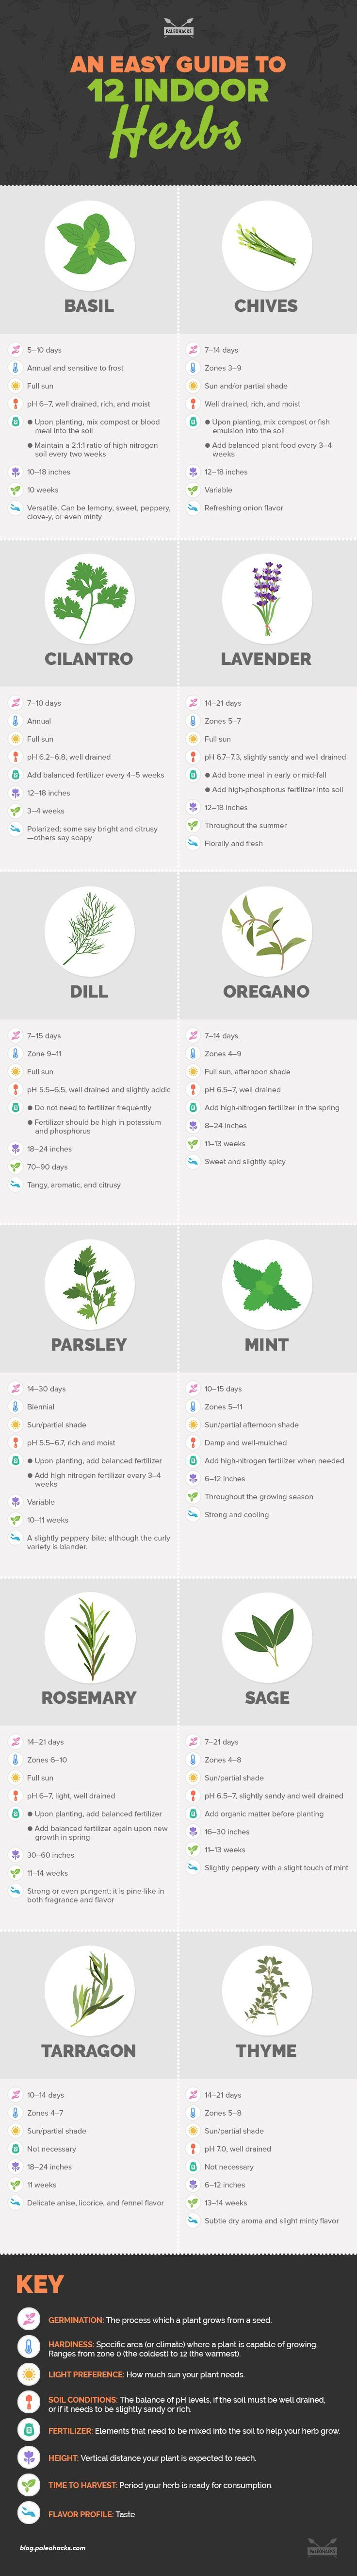 Stay healthy by cooking with your own organic herbs. Here are 12 indoor herbs you can grow yourself and use in healthy cooking. Learn more: BasilHealth at www.basilhealth.com